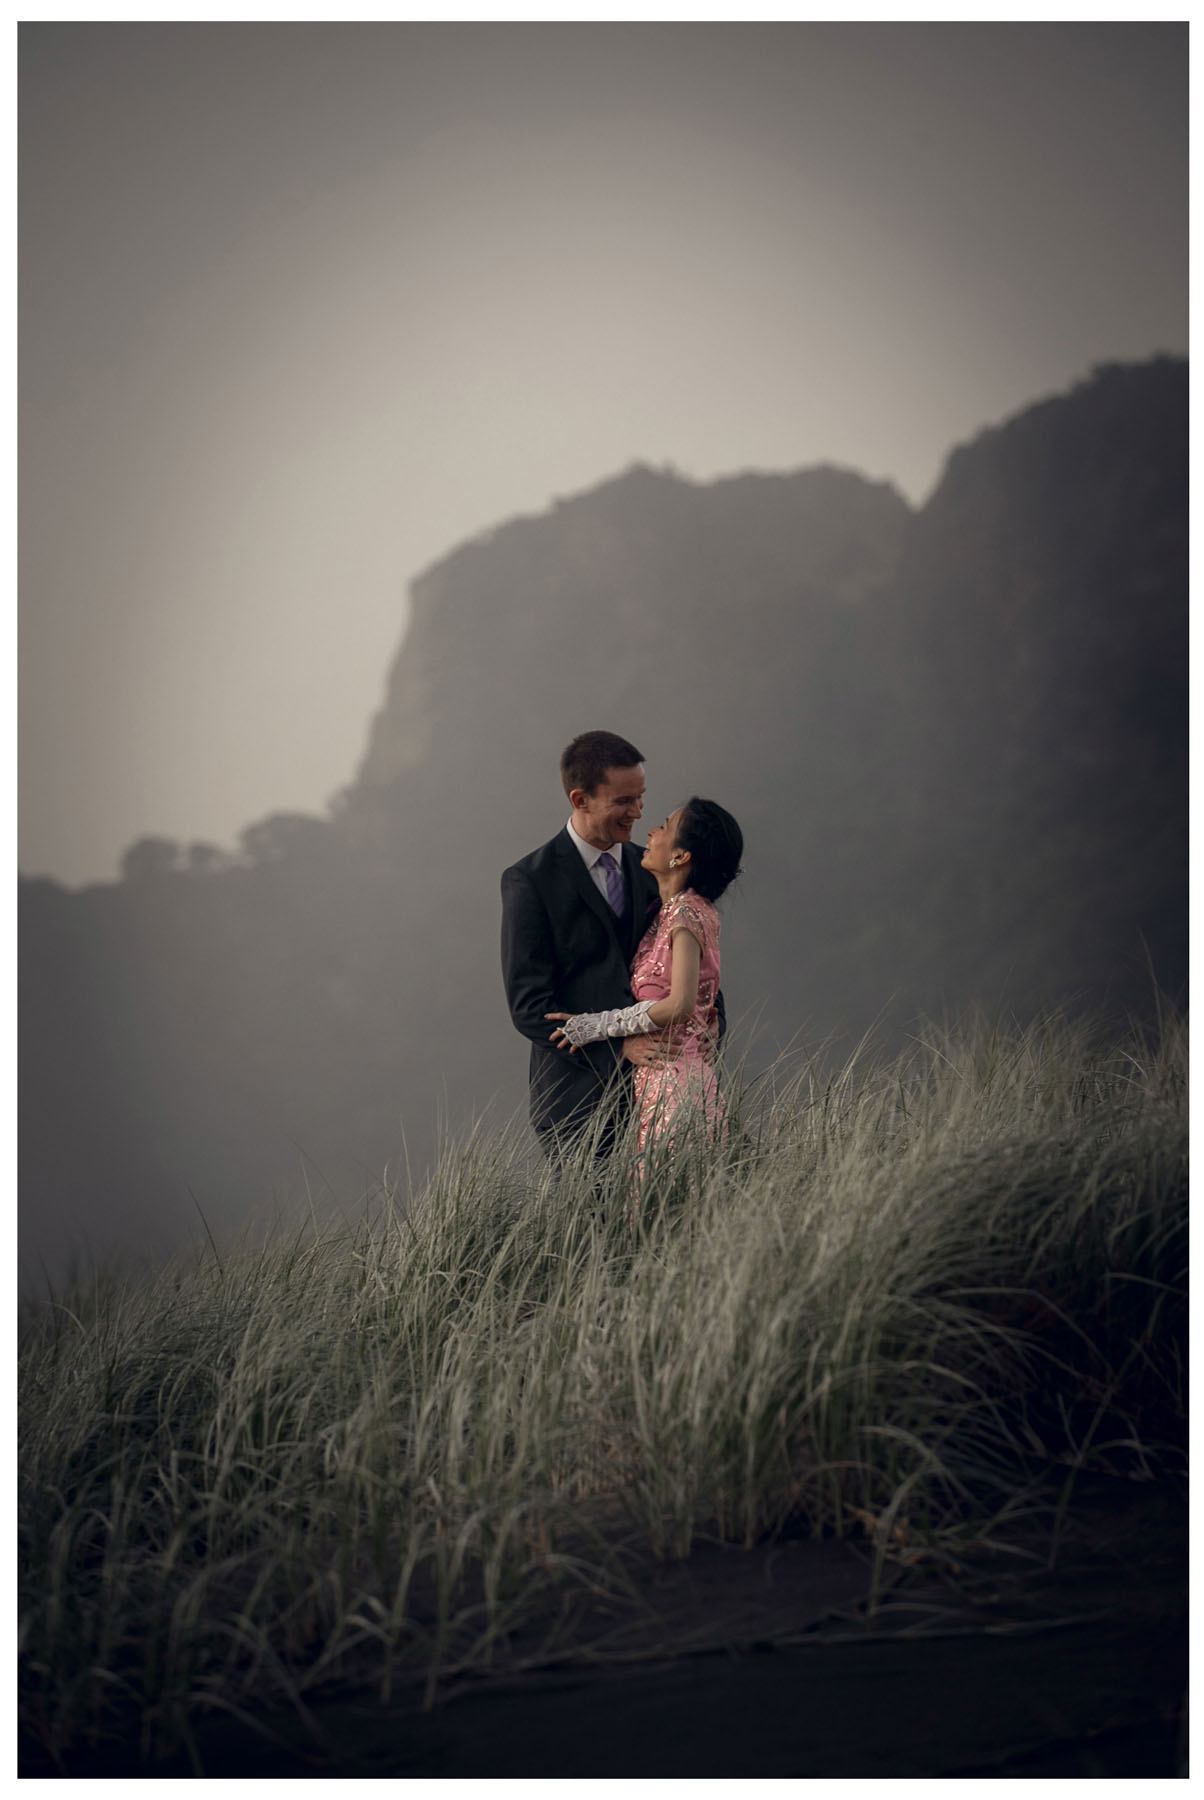 wedding photograph by Auckland wedding photographer Chris Loufte www.theweddingphotographer.co.nz Karekare Beach